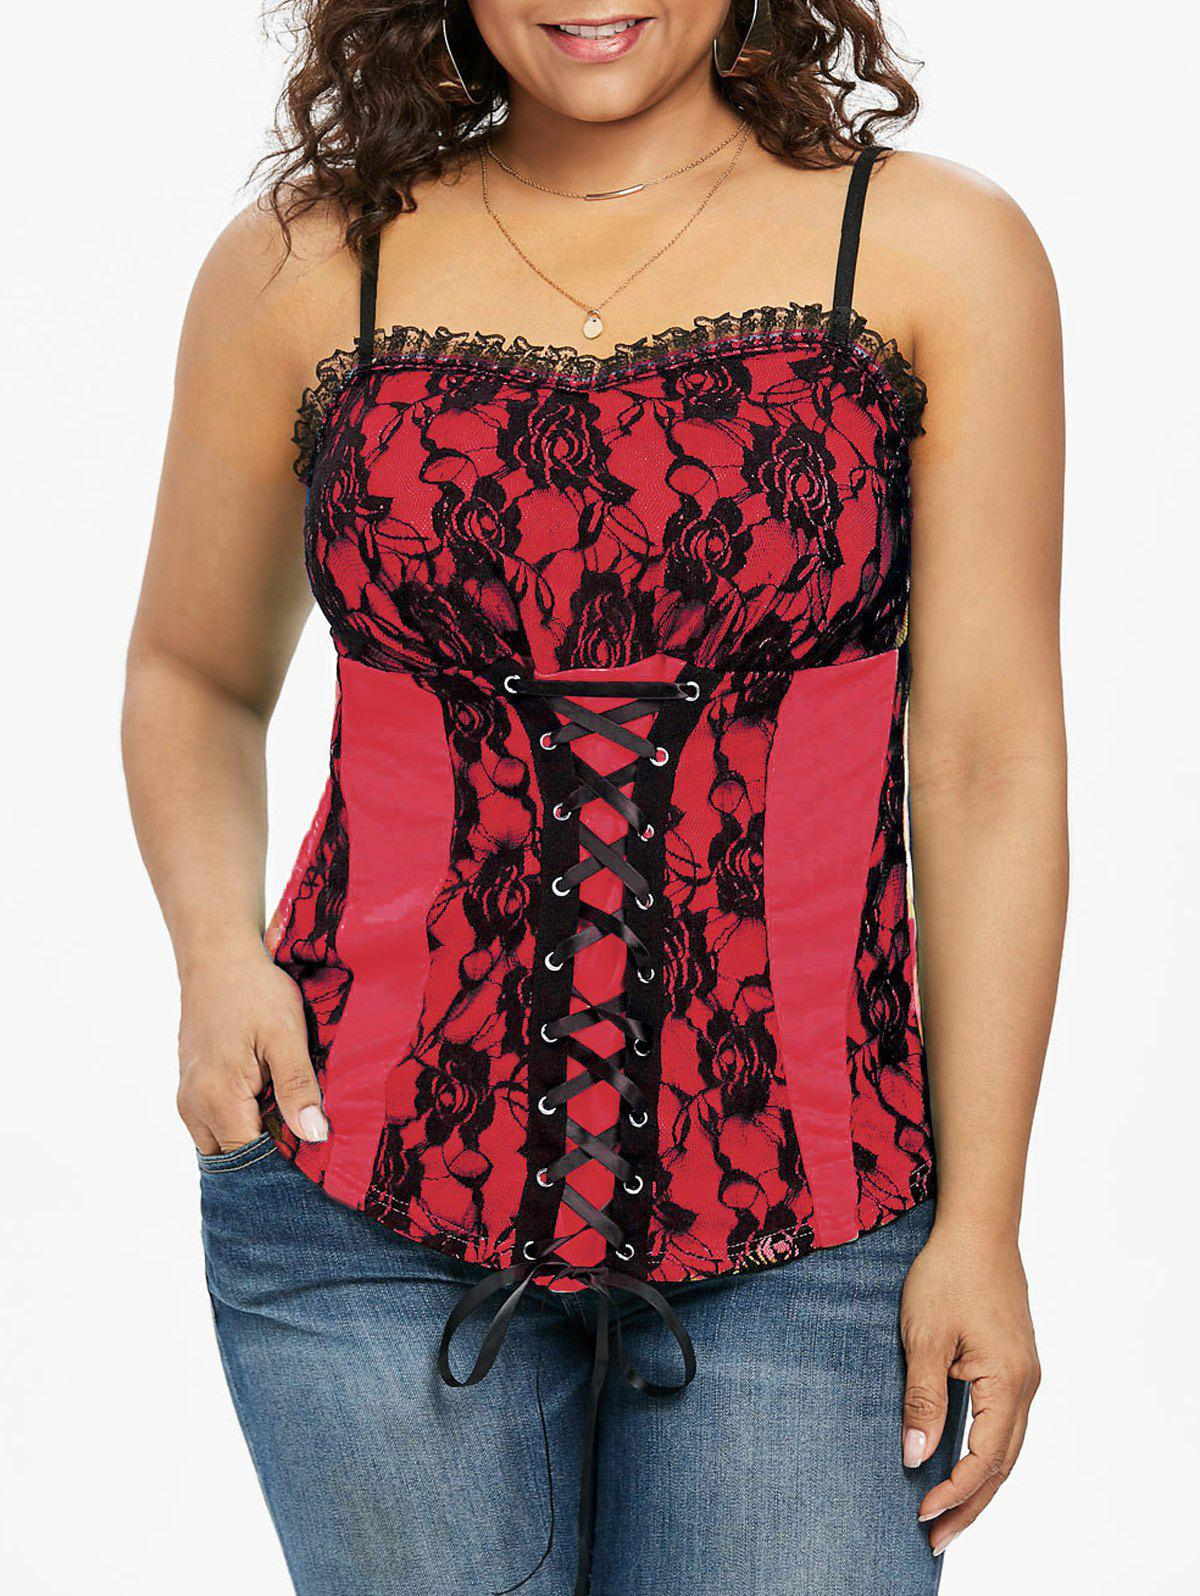 3573d45cfc2aa 2019 Plus Size Lace Up Empire Waist Tank Top